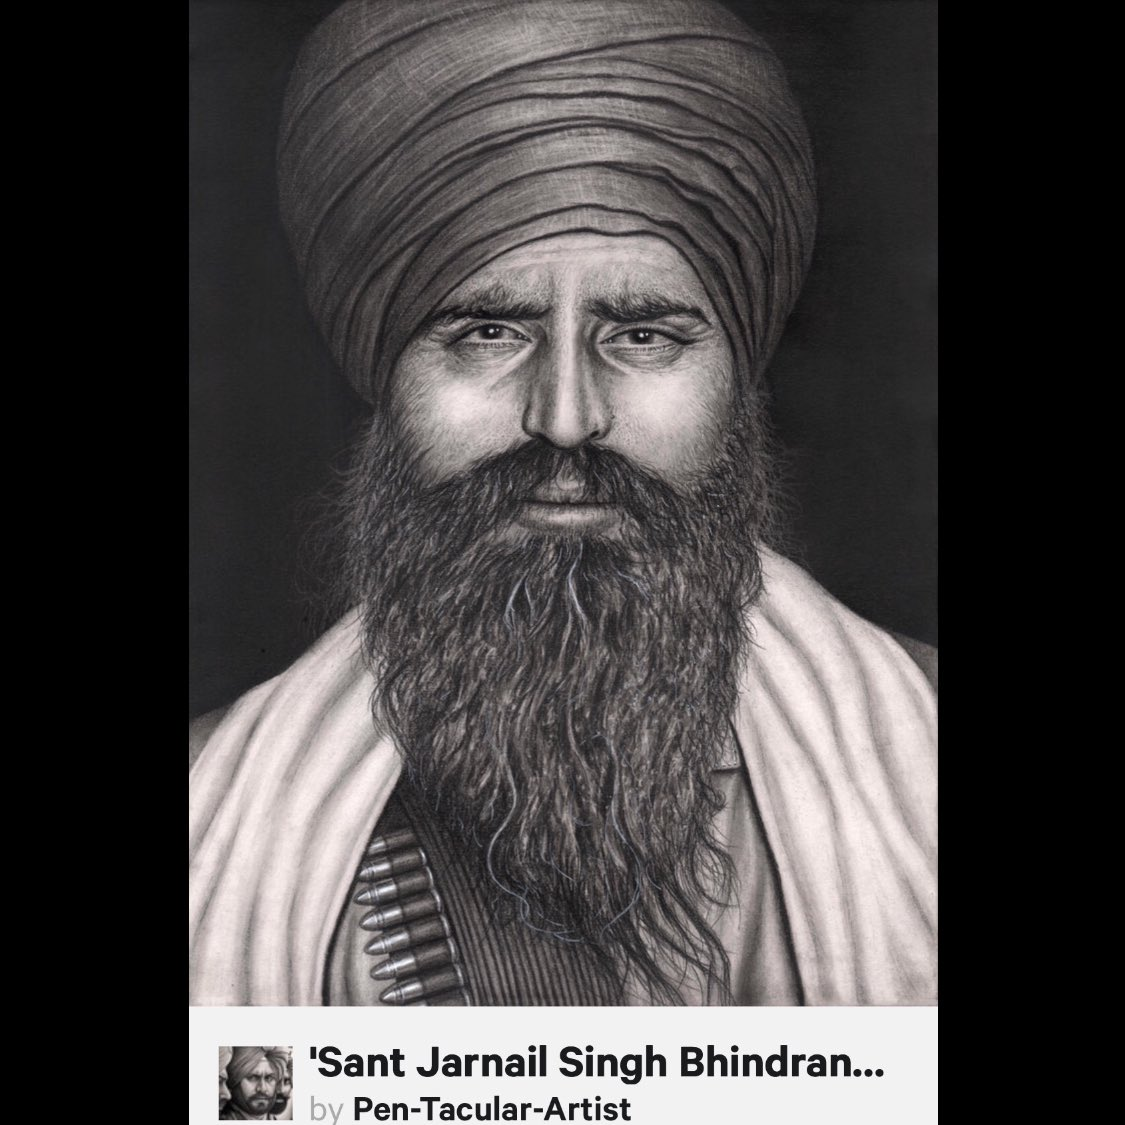 Listening to Shaheed #Bhindranwale speeches &amp; reflecting on sacrifices made for the #Sikh #Panth. Is this the future &amp; legacy he envisioned? <br>http://pic.twitter.com/8Sp5VgZ5BI